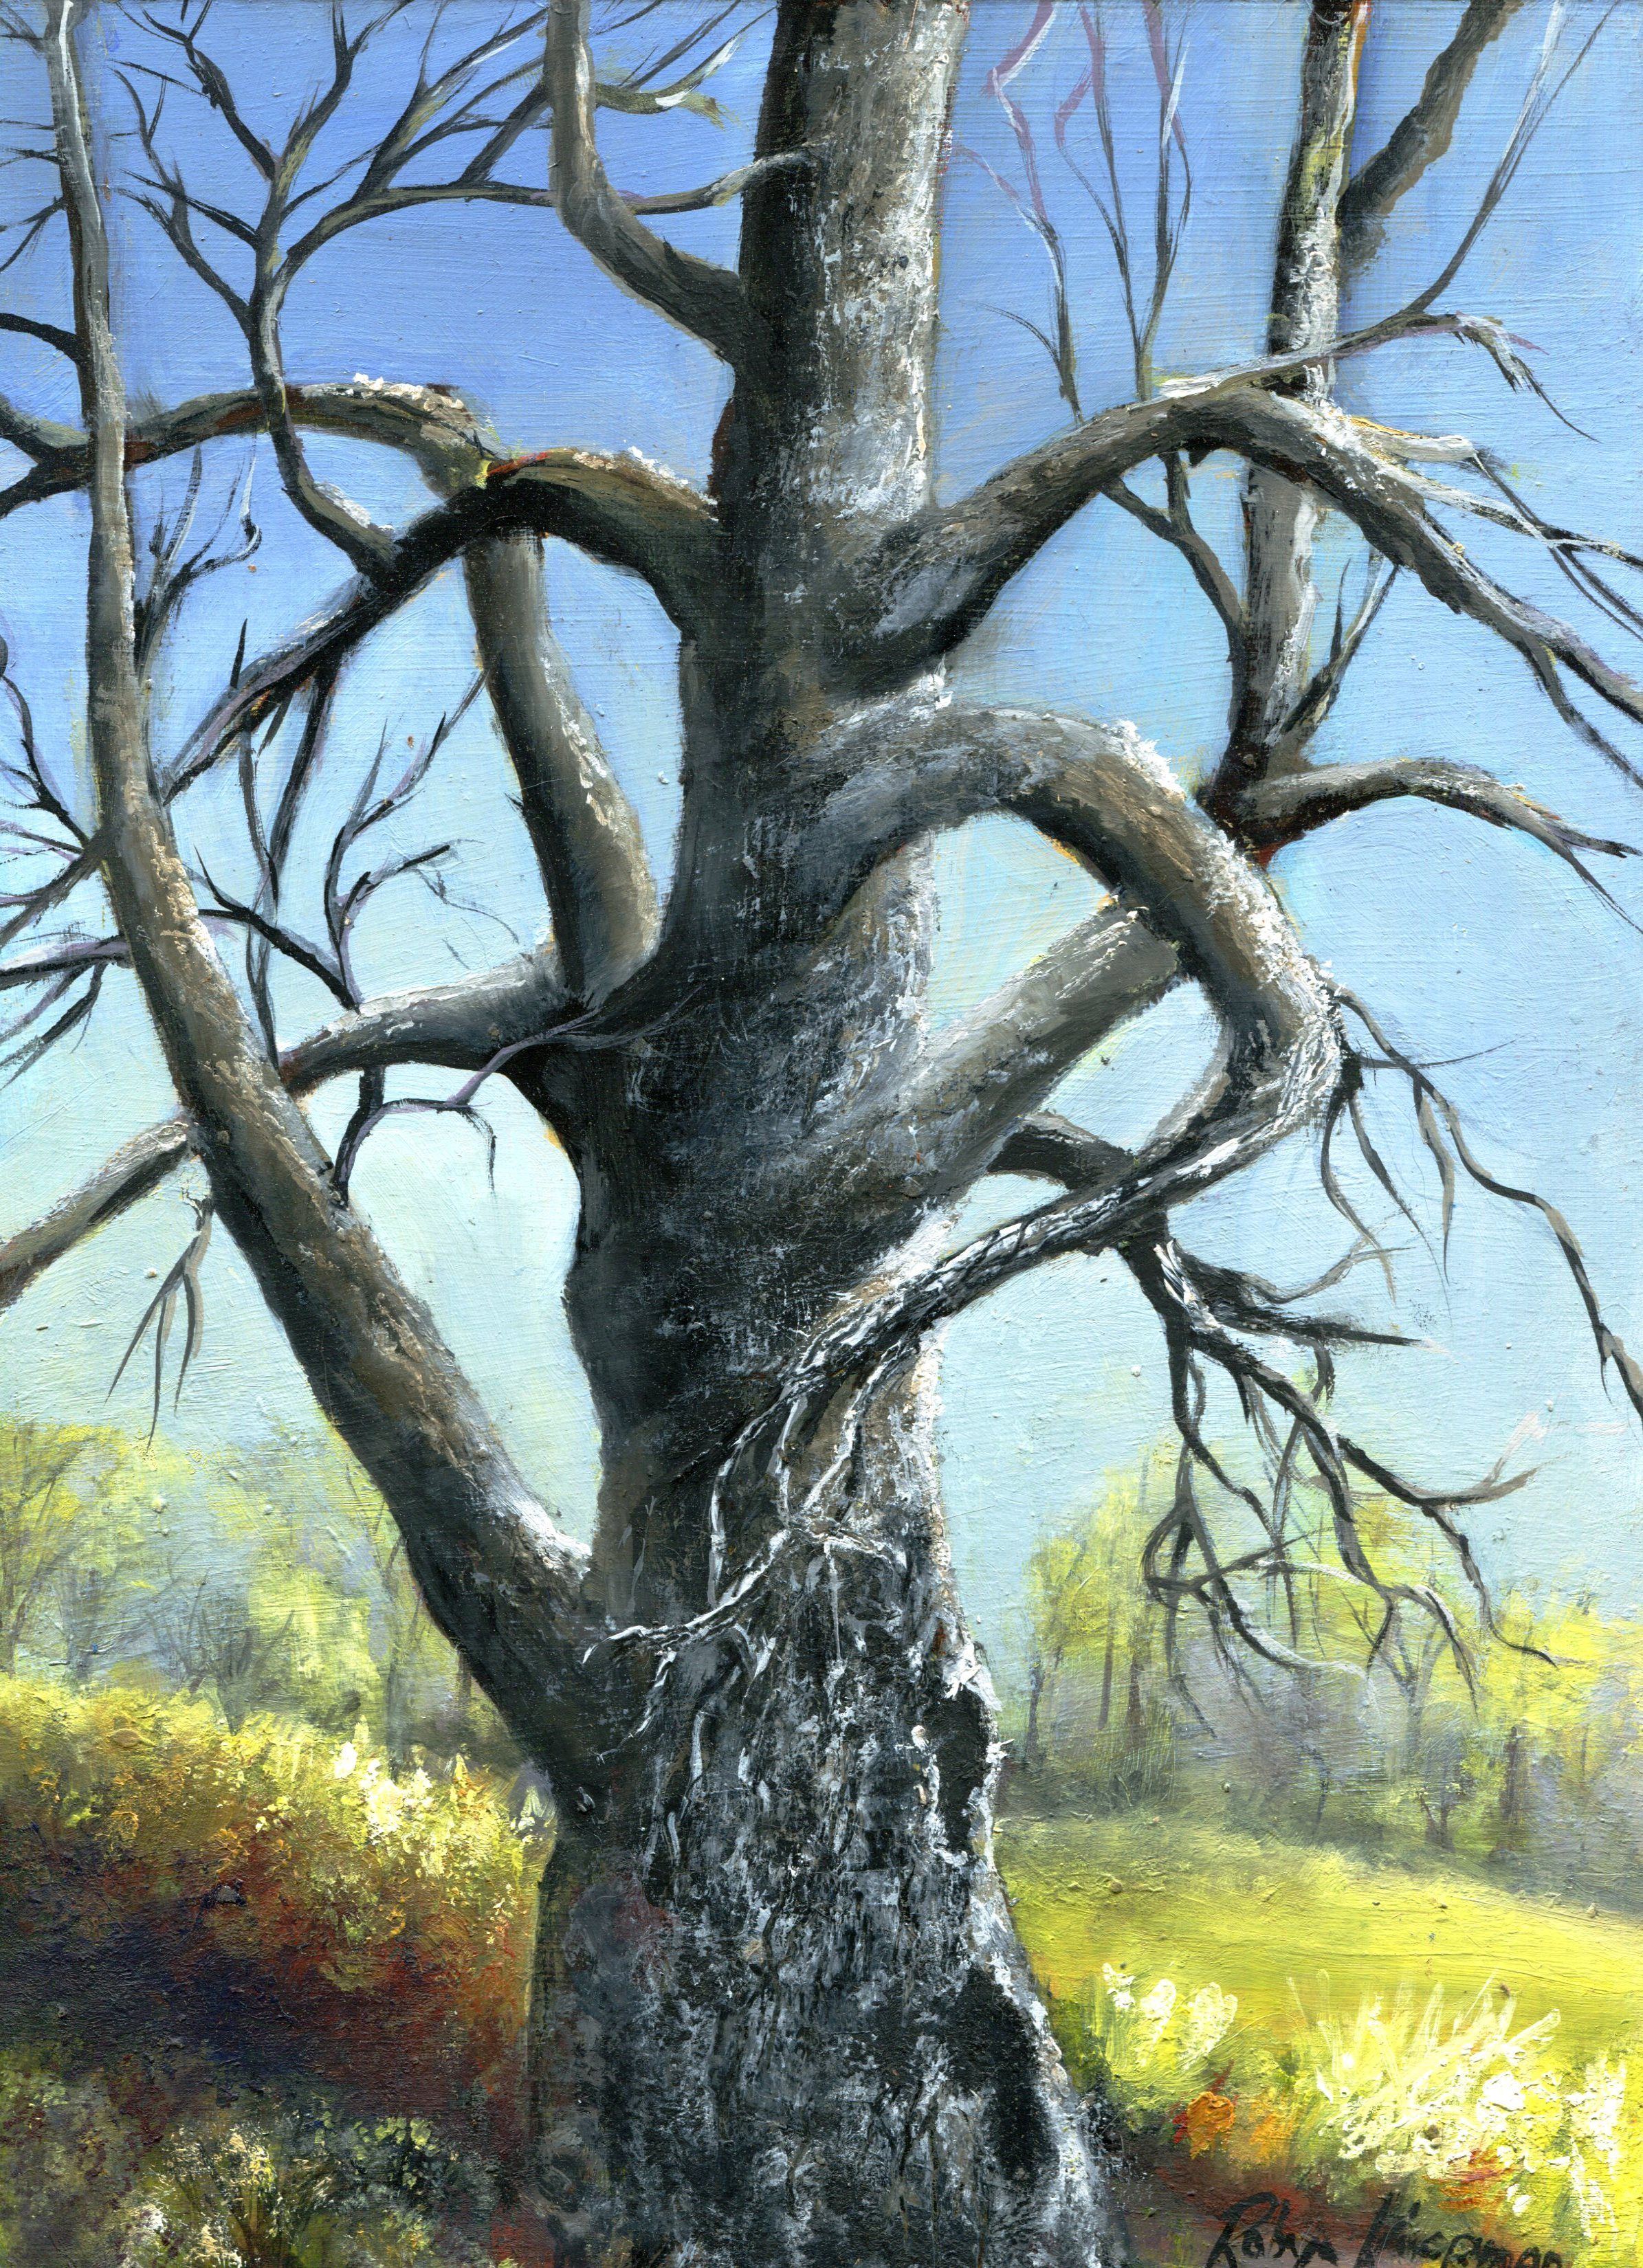 62C ROBYN KOOPMAN, DEAD TREE IN SPRING, OIL ON BOARD